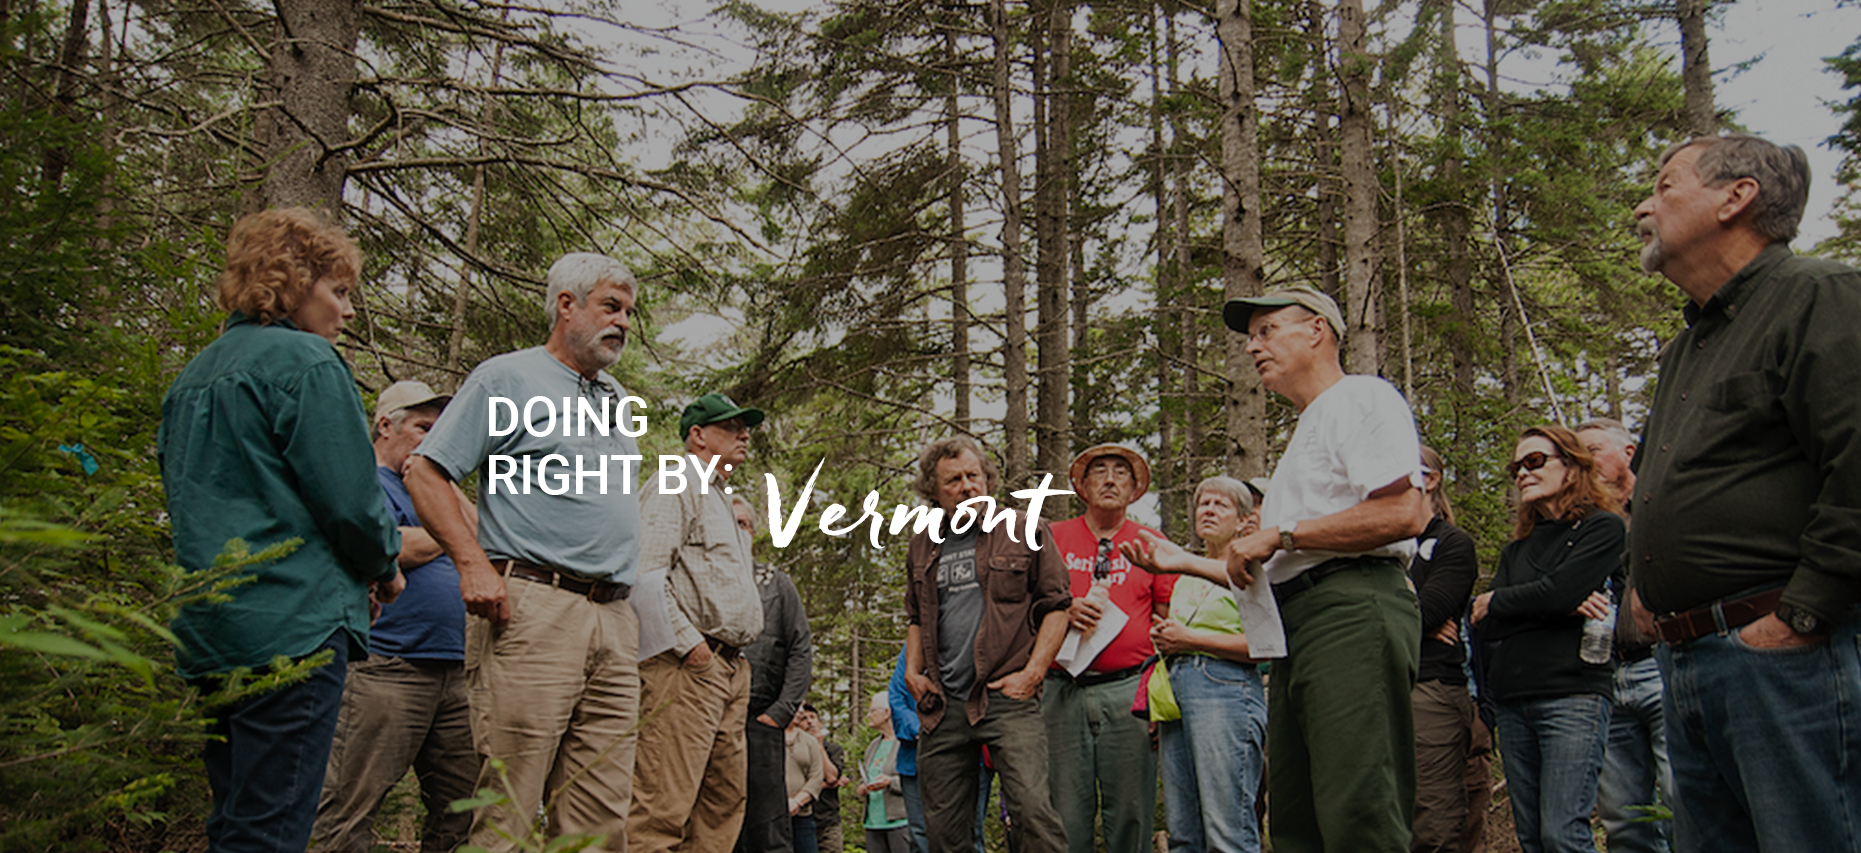 Doing Right By: Vermont Homepage slide